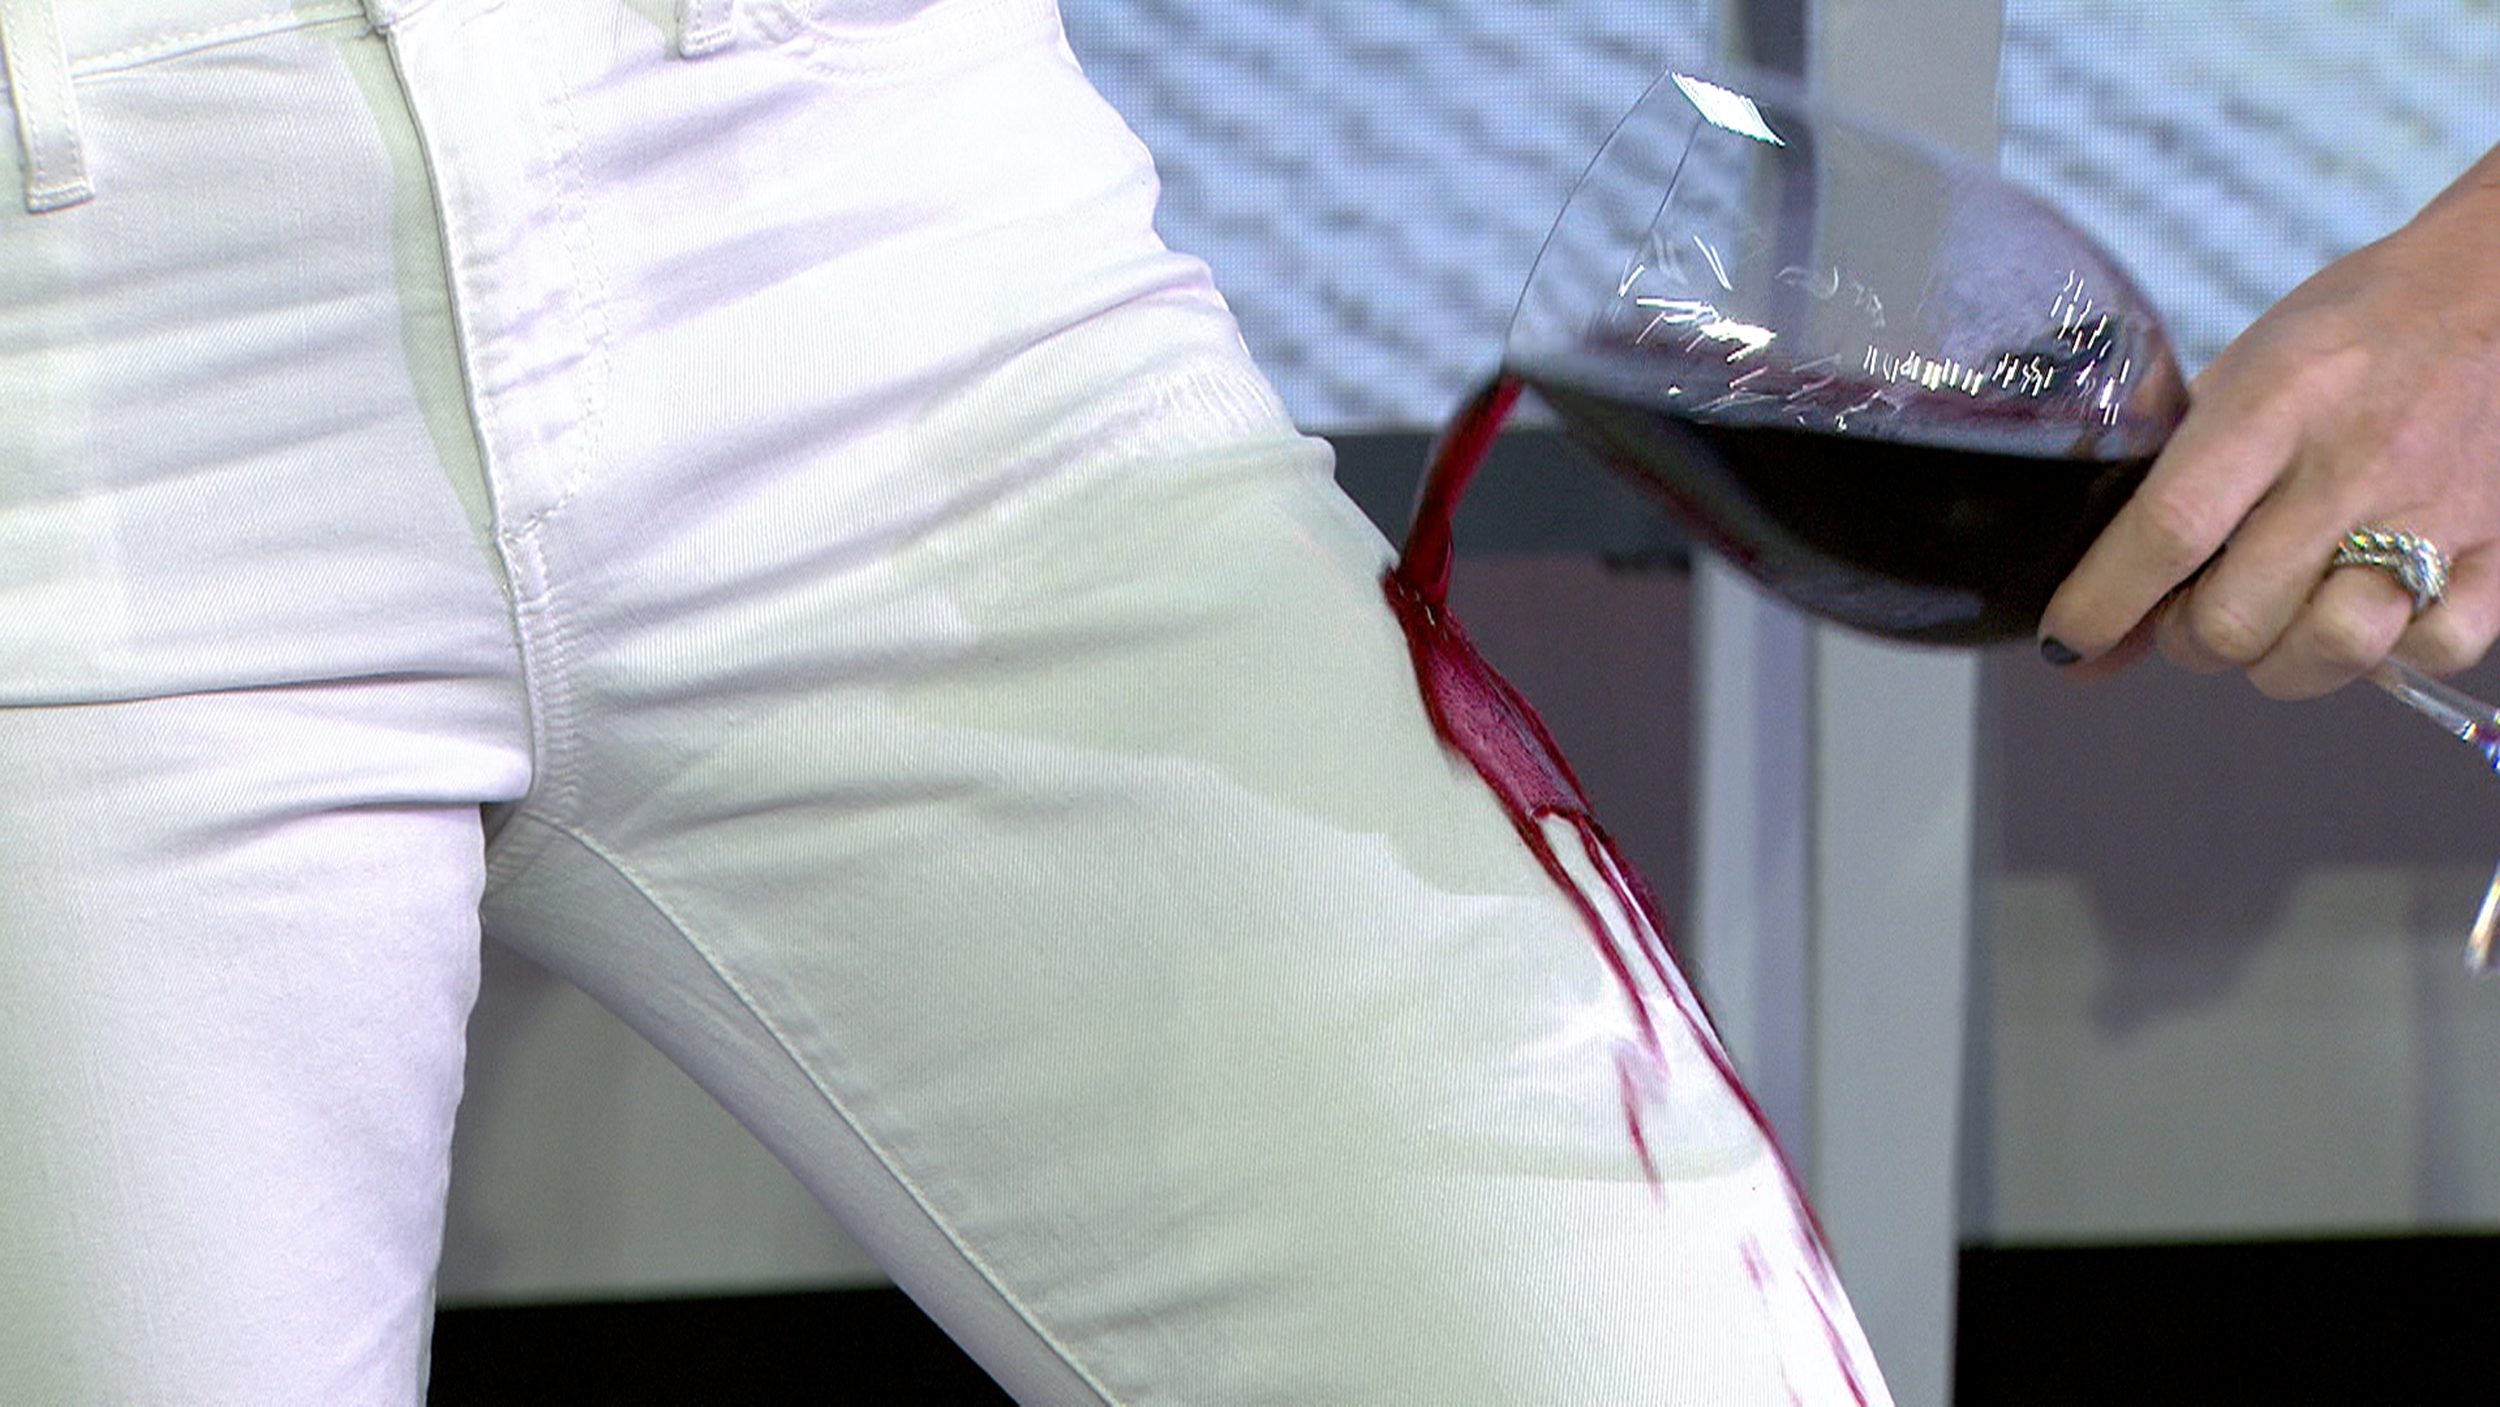 Stain-resistant white jeans? TODAY tests new denim line - TODAY.com